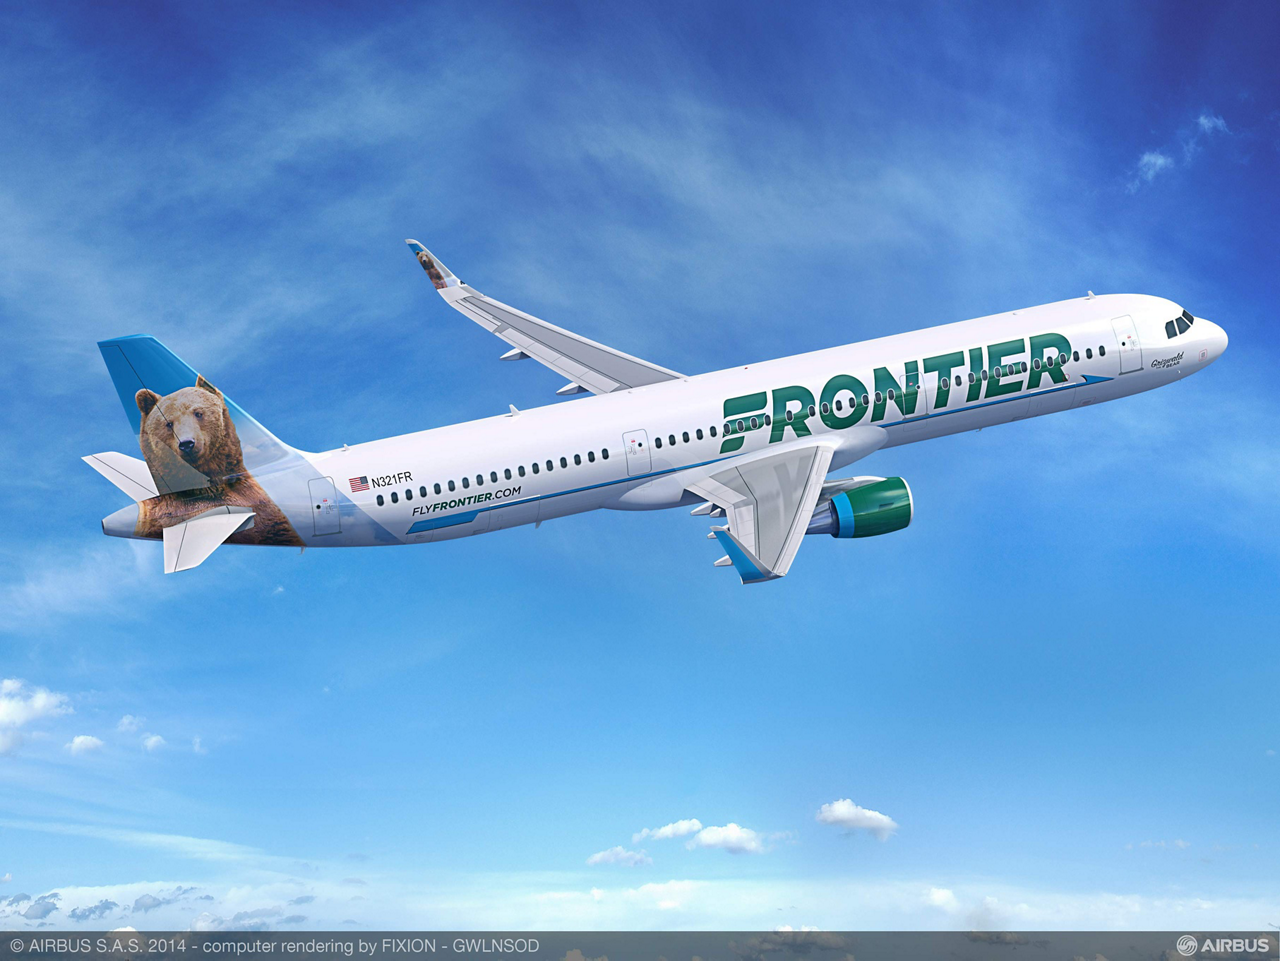 U.S.-based Frontier Airlines' firm order for 10 A321s and two A320s – all of which are current engine option (CEO) aircraft – was announced 2 June 2015